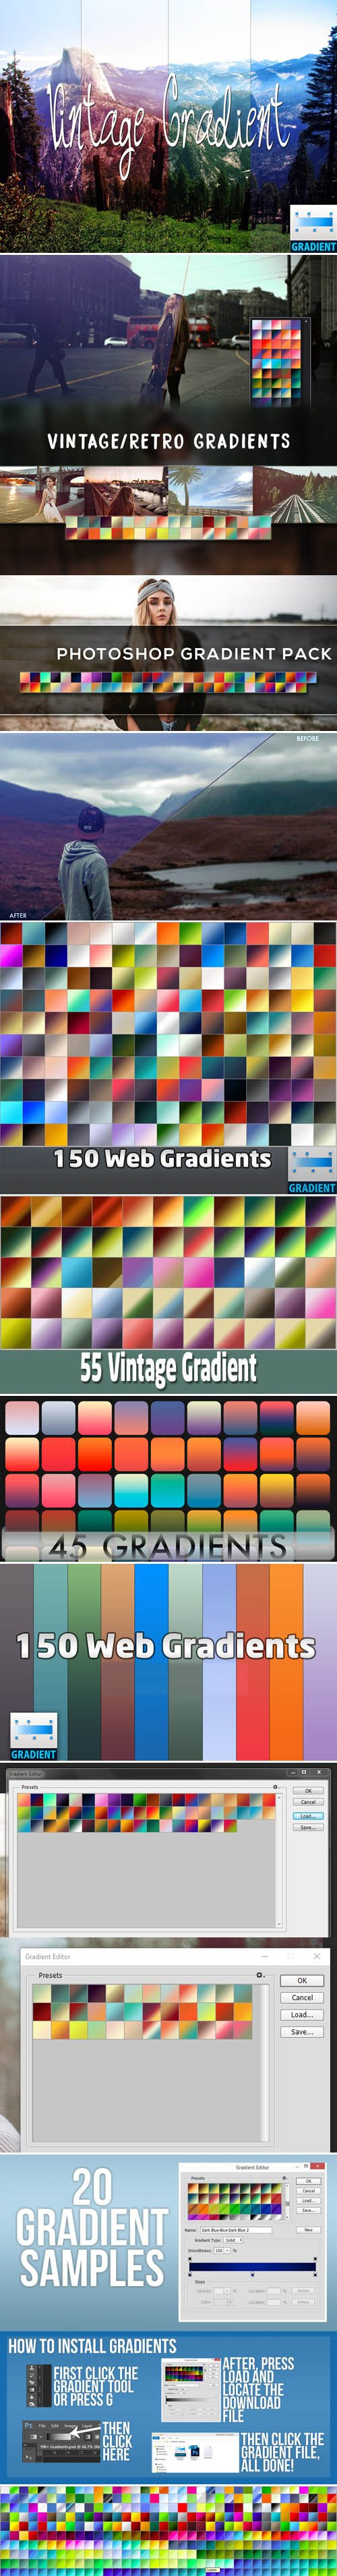 700+ Photoshop Gradients Collection